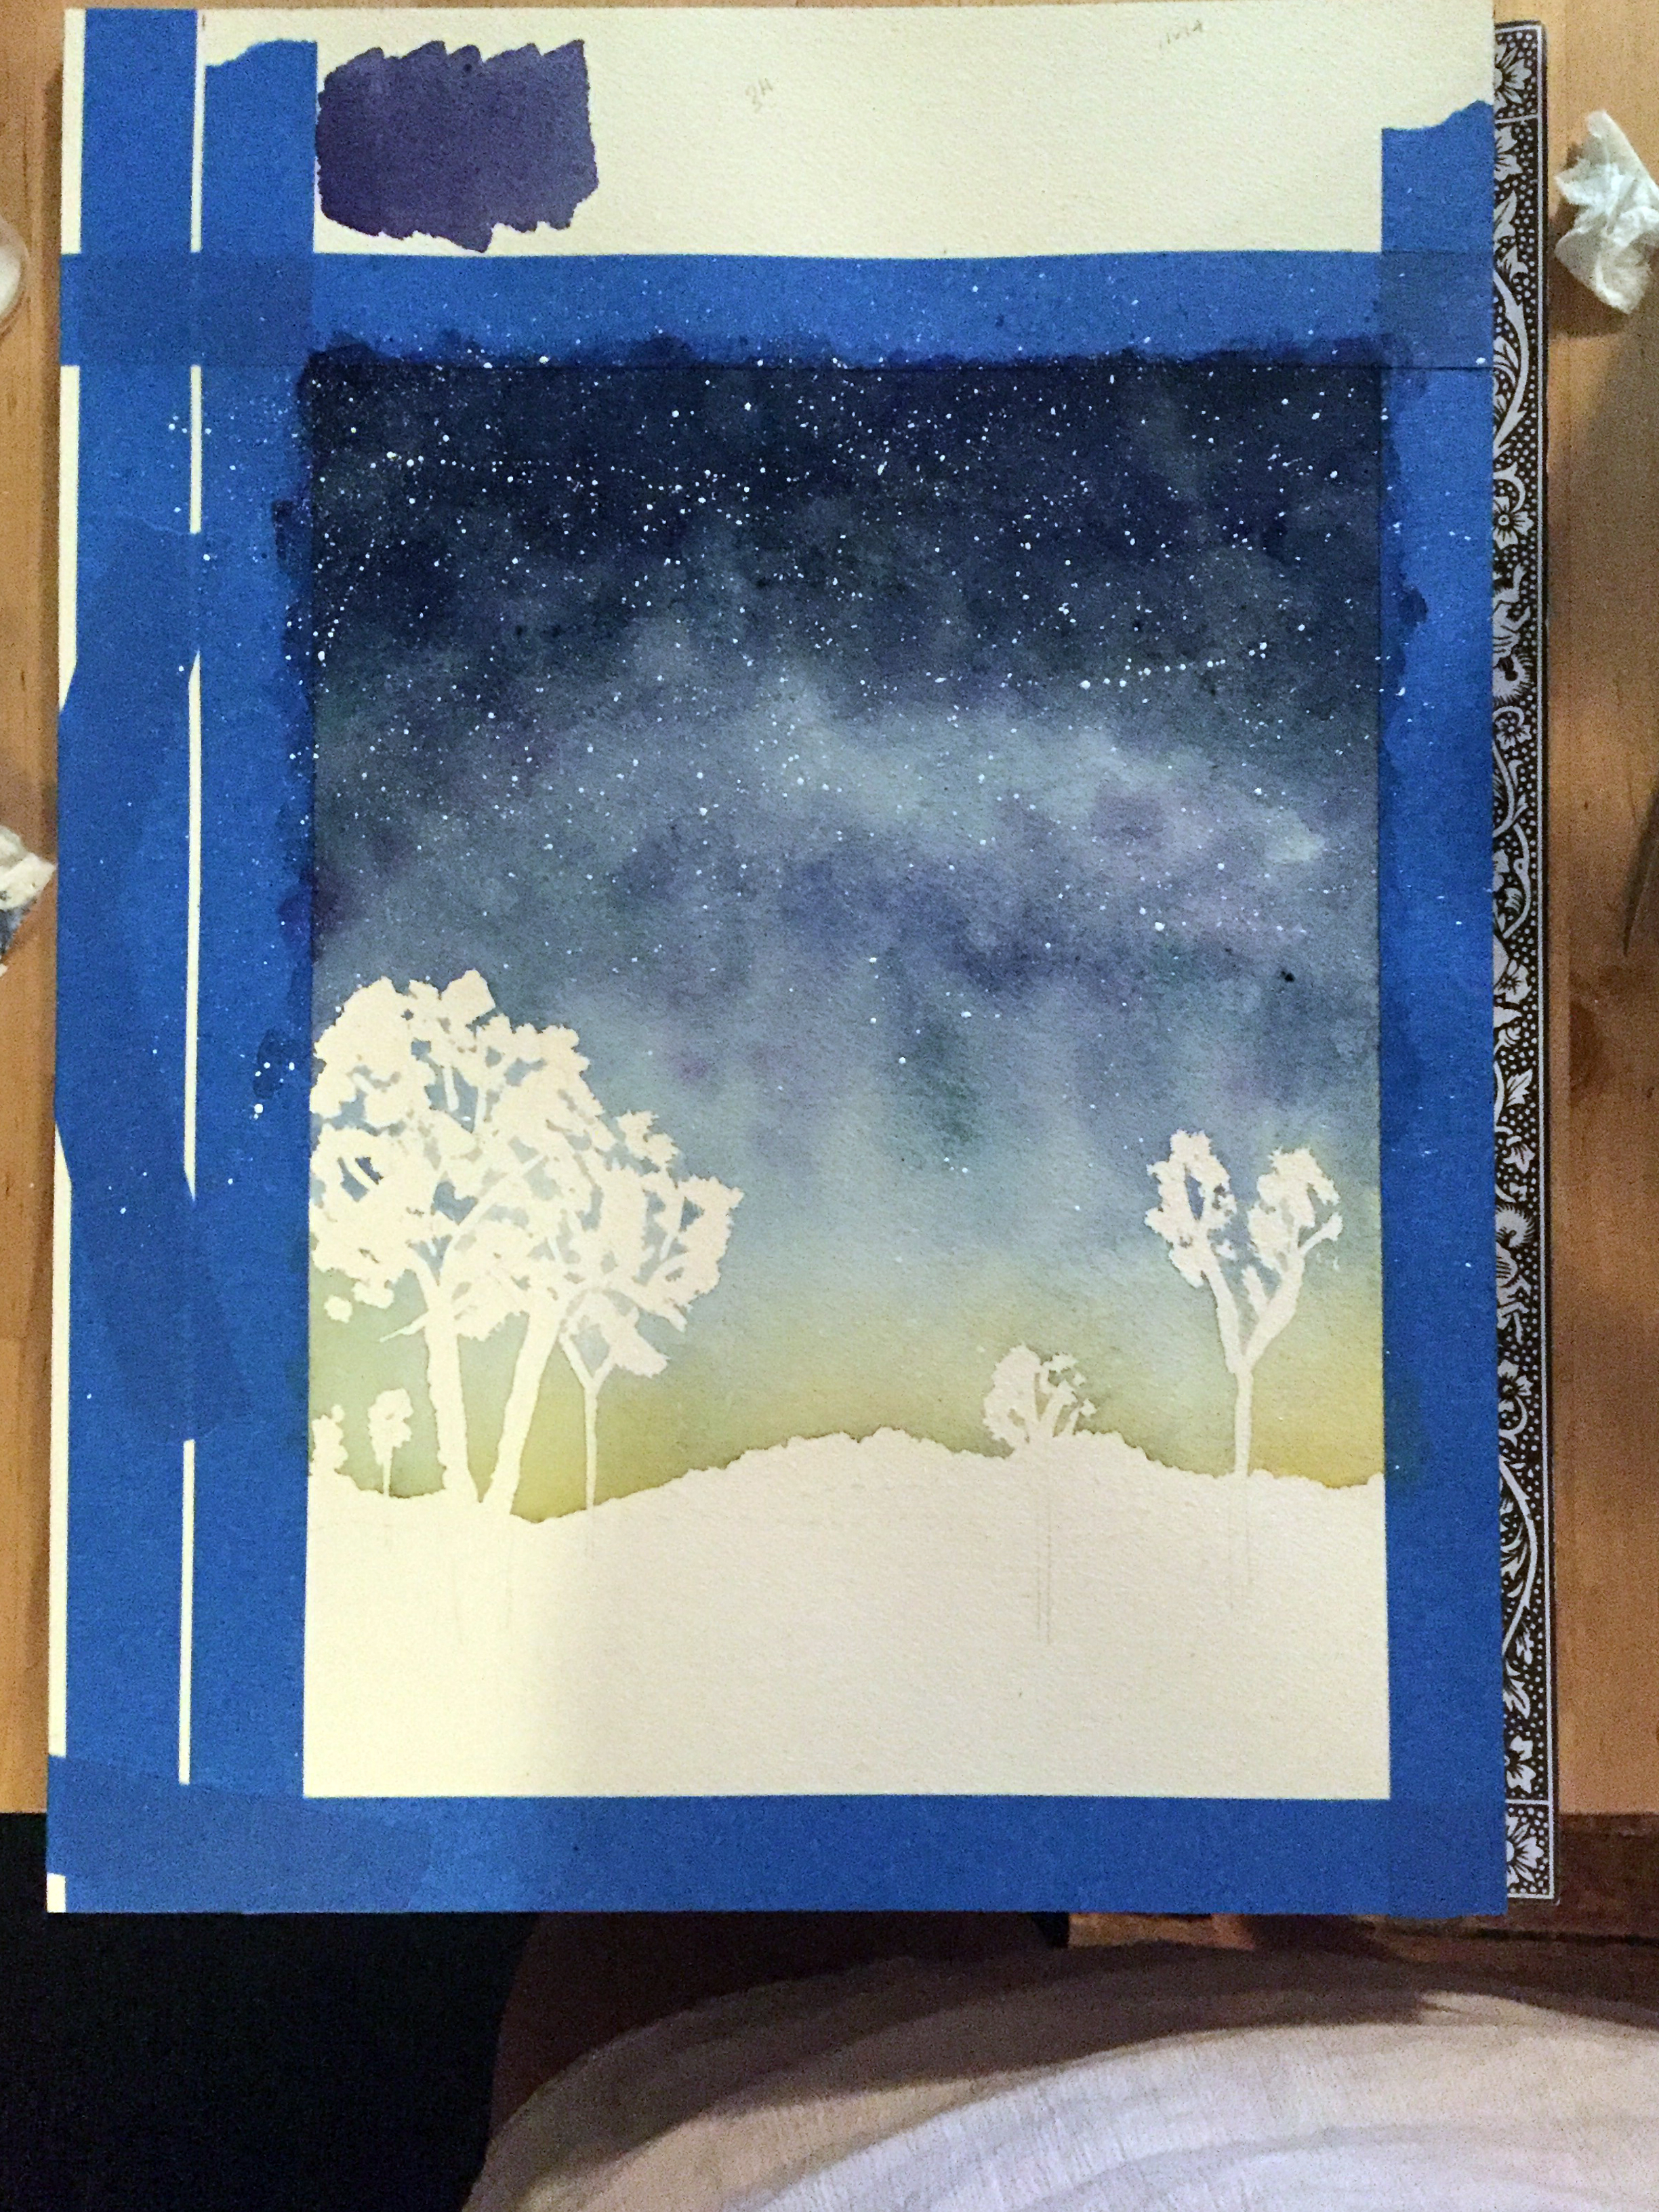 Step 2: Once the sky is complete, gently splatter white paint to represent the stars. Once this is dry, carefully remove the masking fluid.